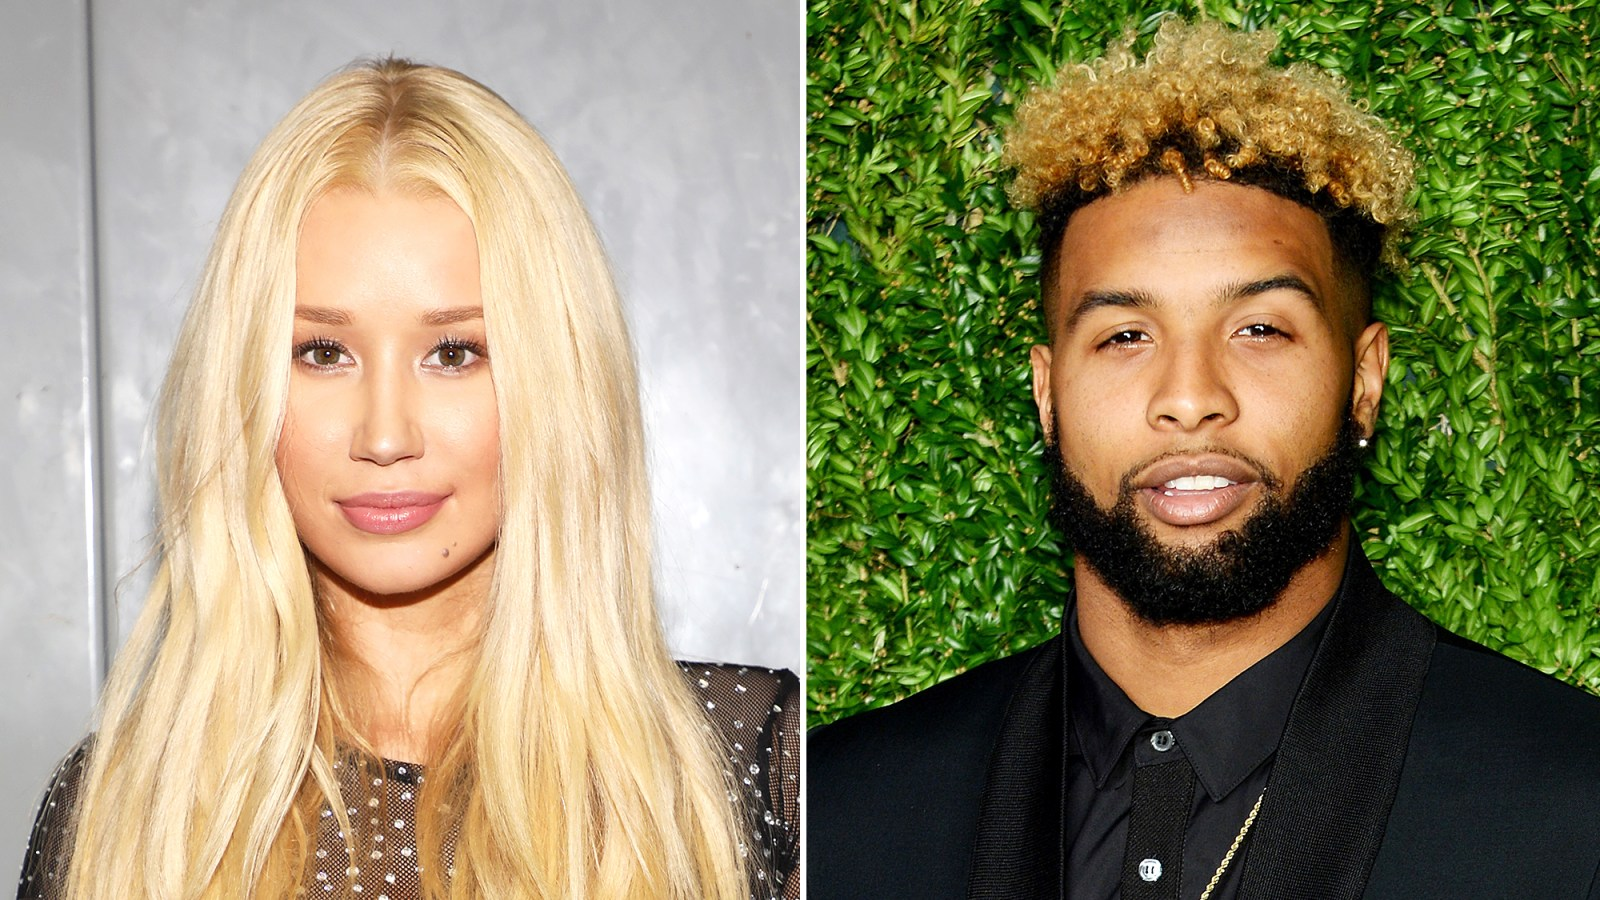 Who es iggy azalea dating adam4adam datiert